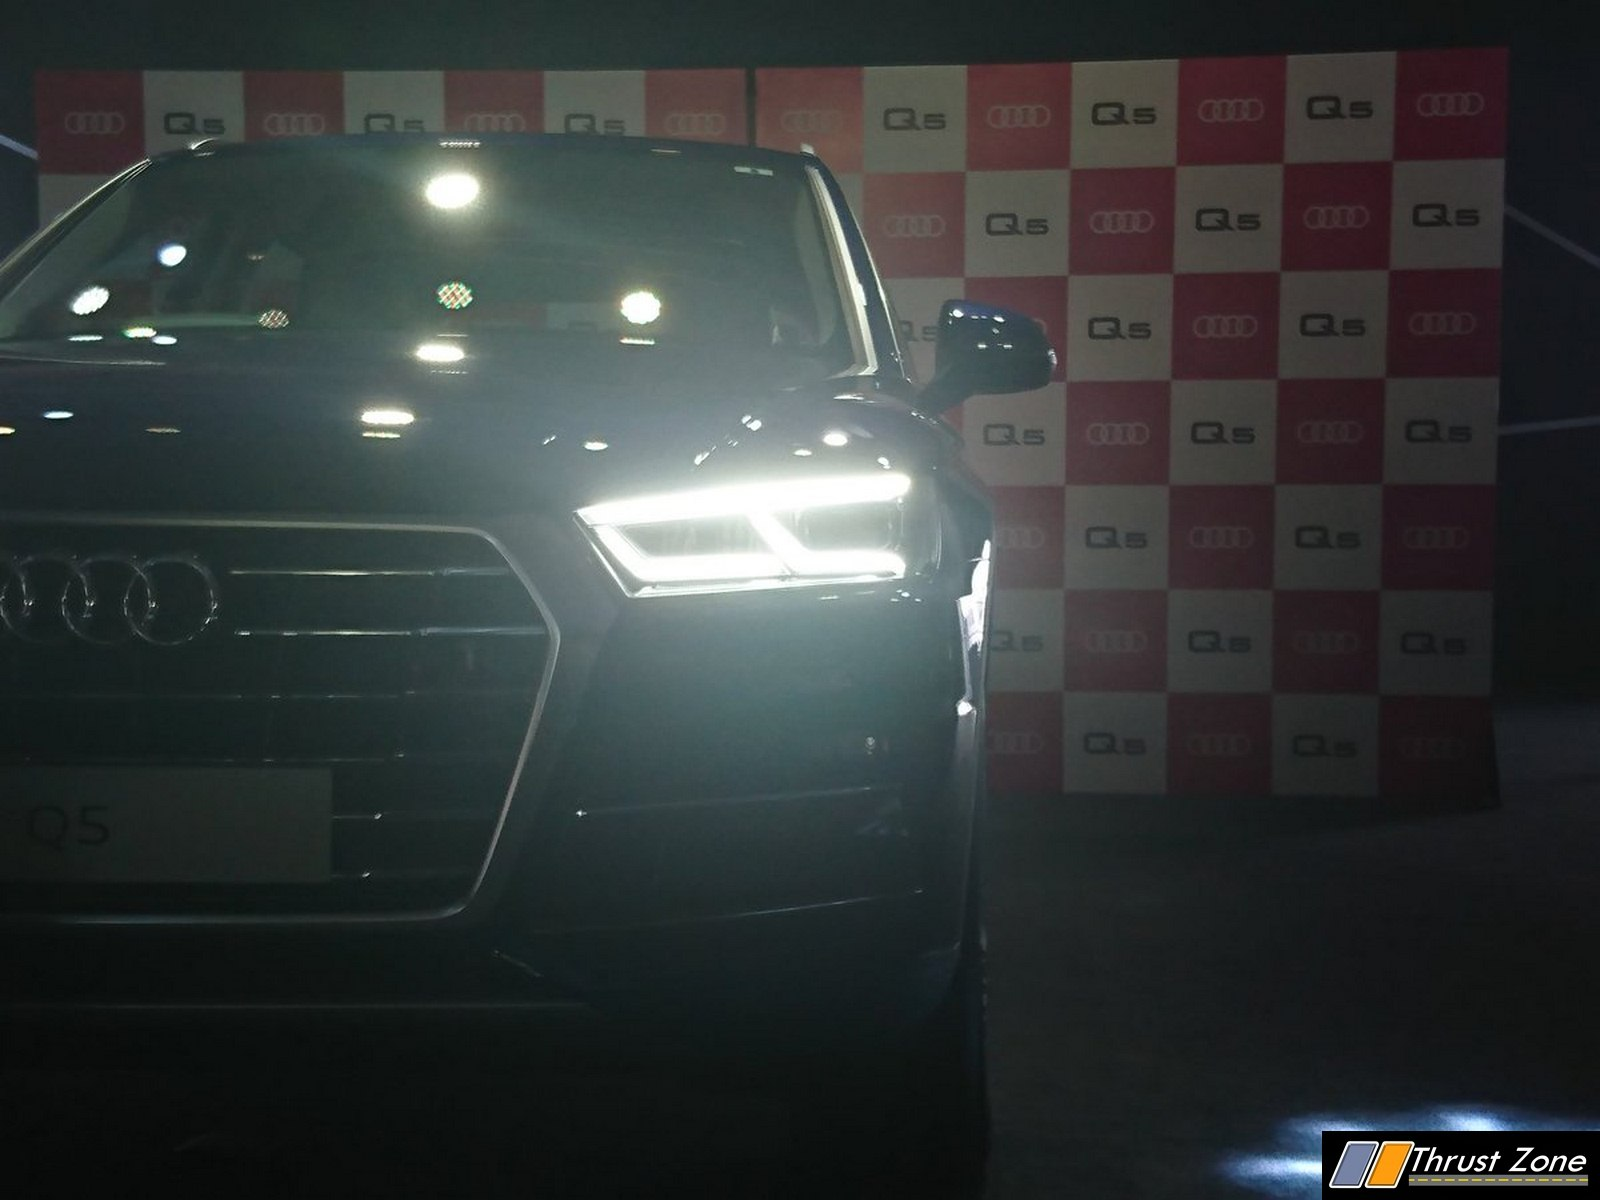 https://www.thrustzone.com/wp-content/uploads/2016/09/Second-Generation-2017-Audi-Q5-Launched-in-India-6.jpg